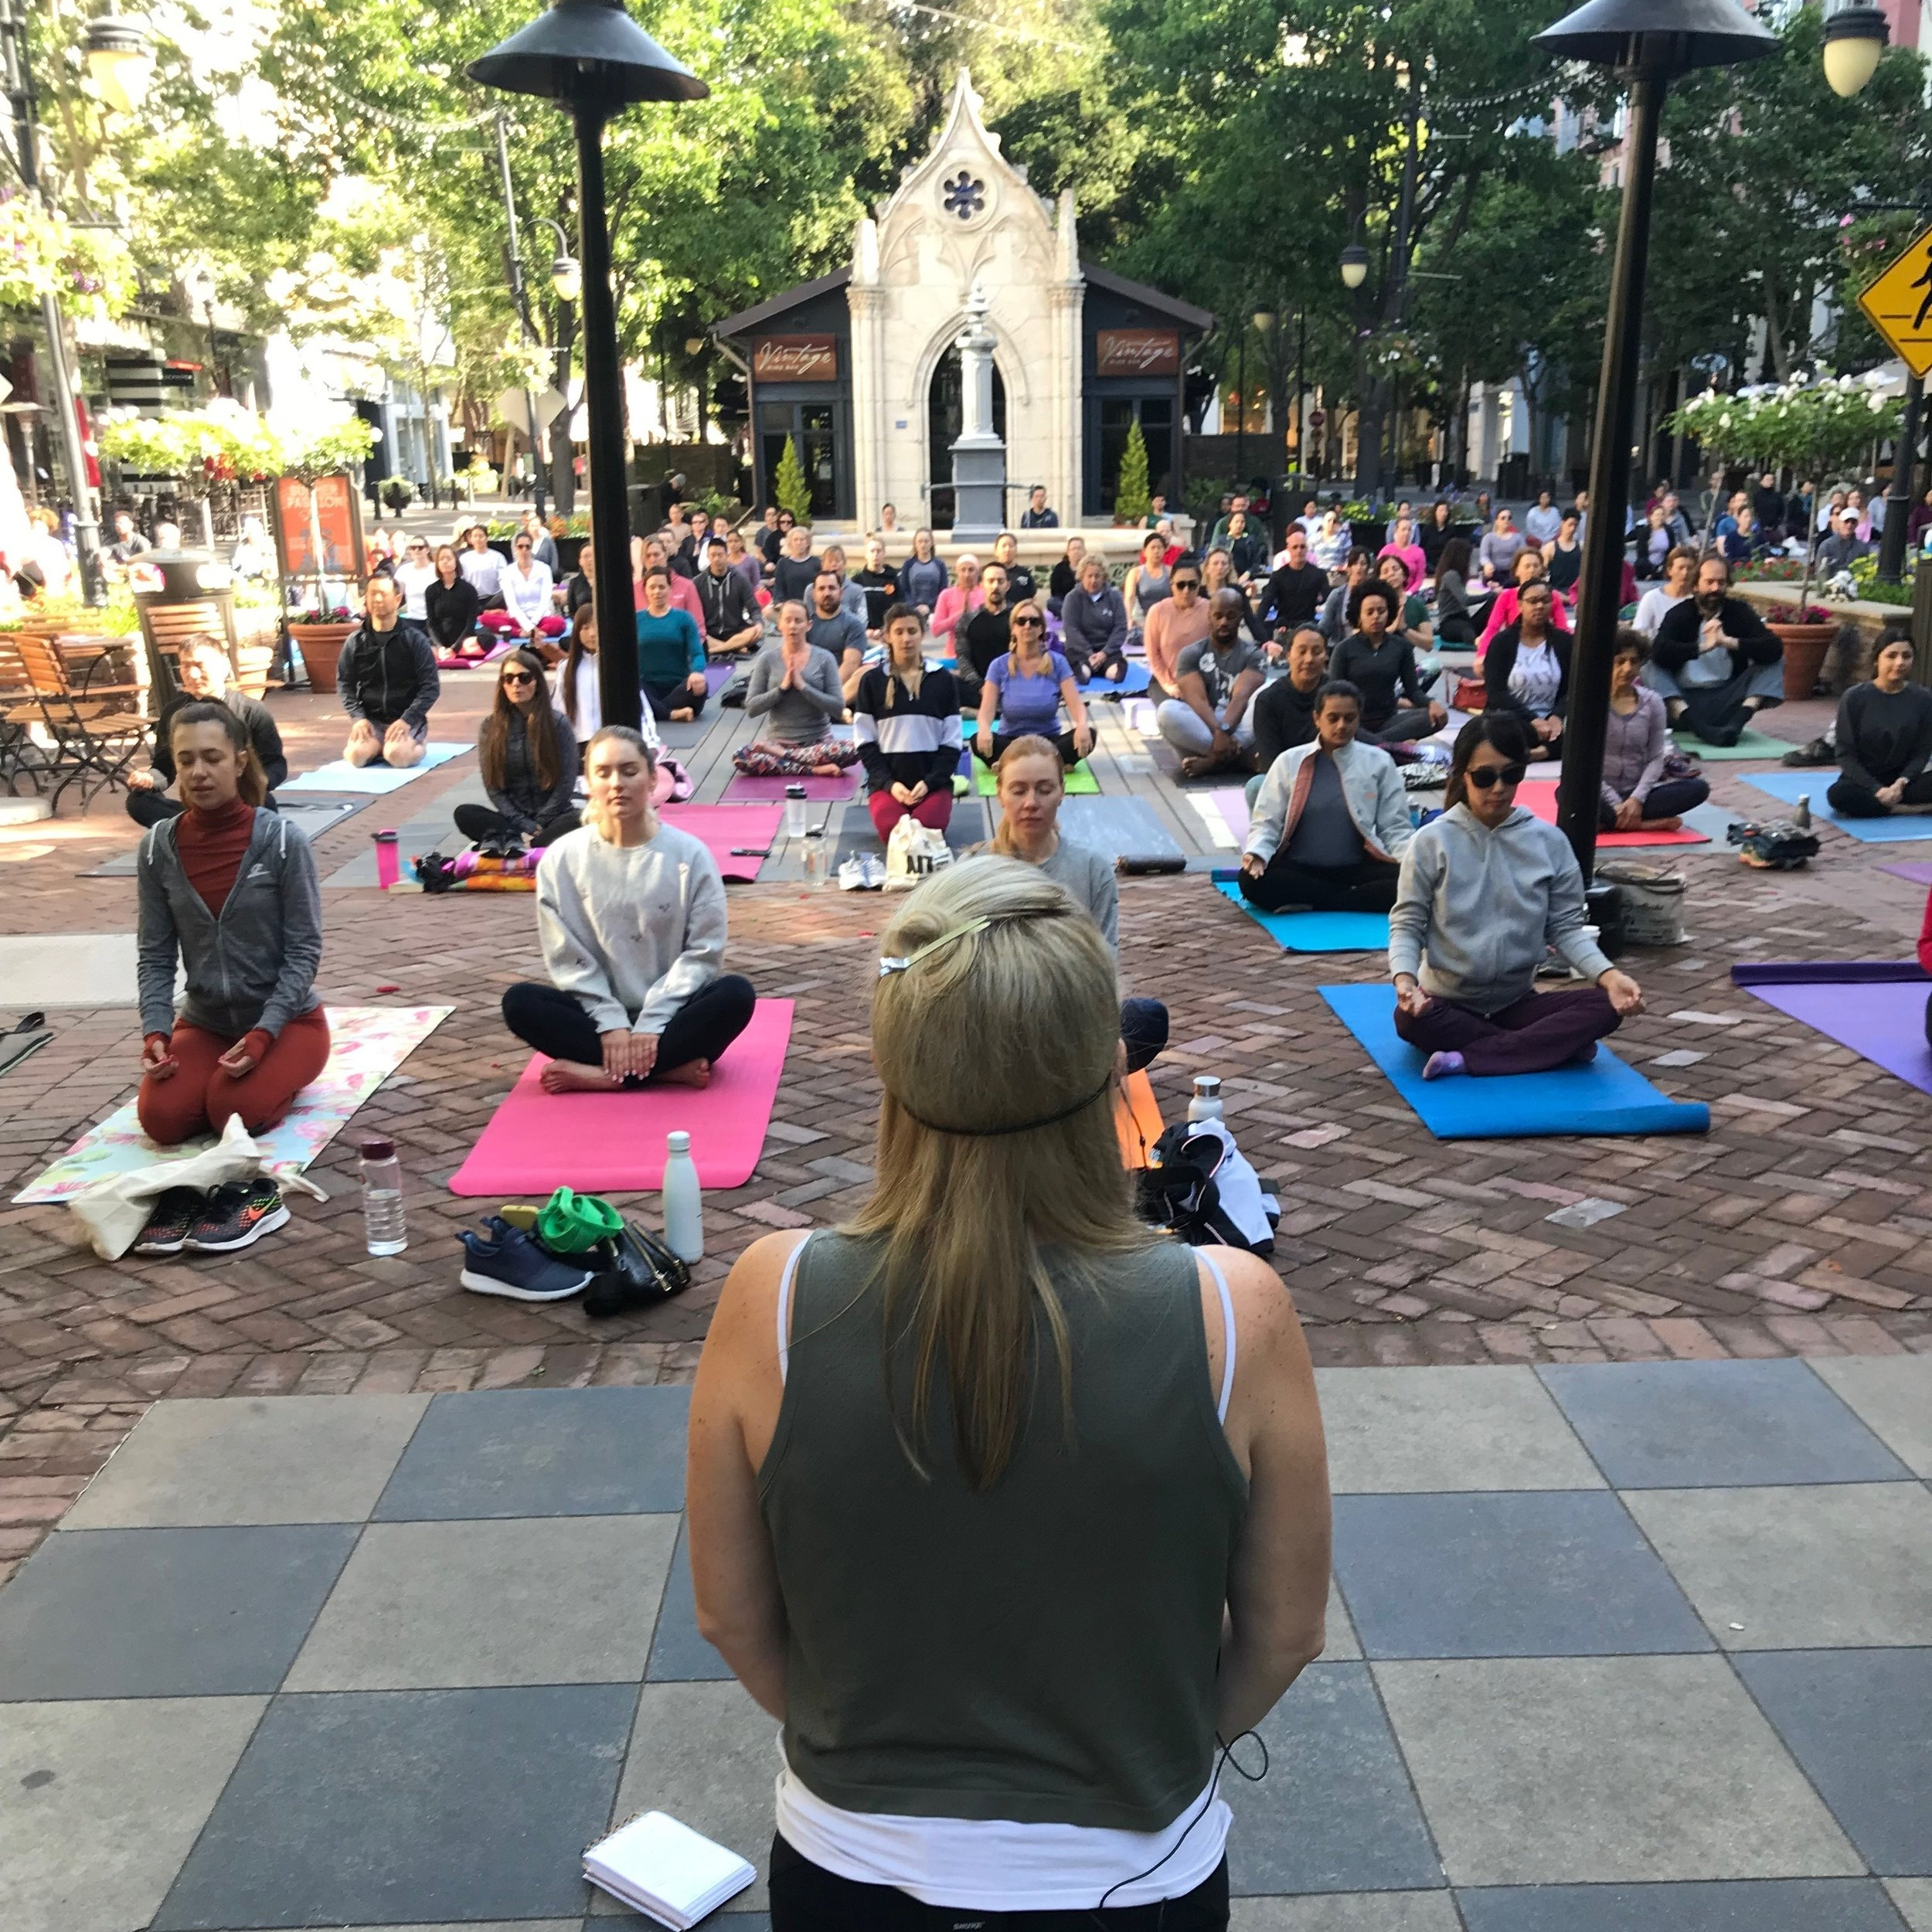 Copy of Copy of @Lululemon Santana Row